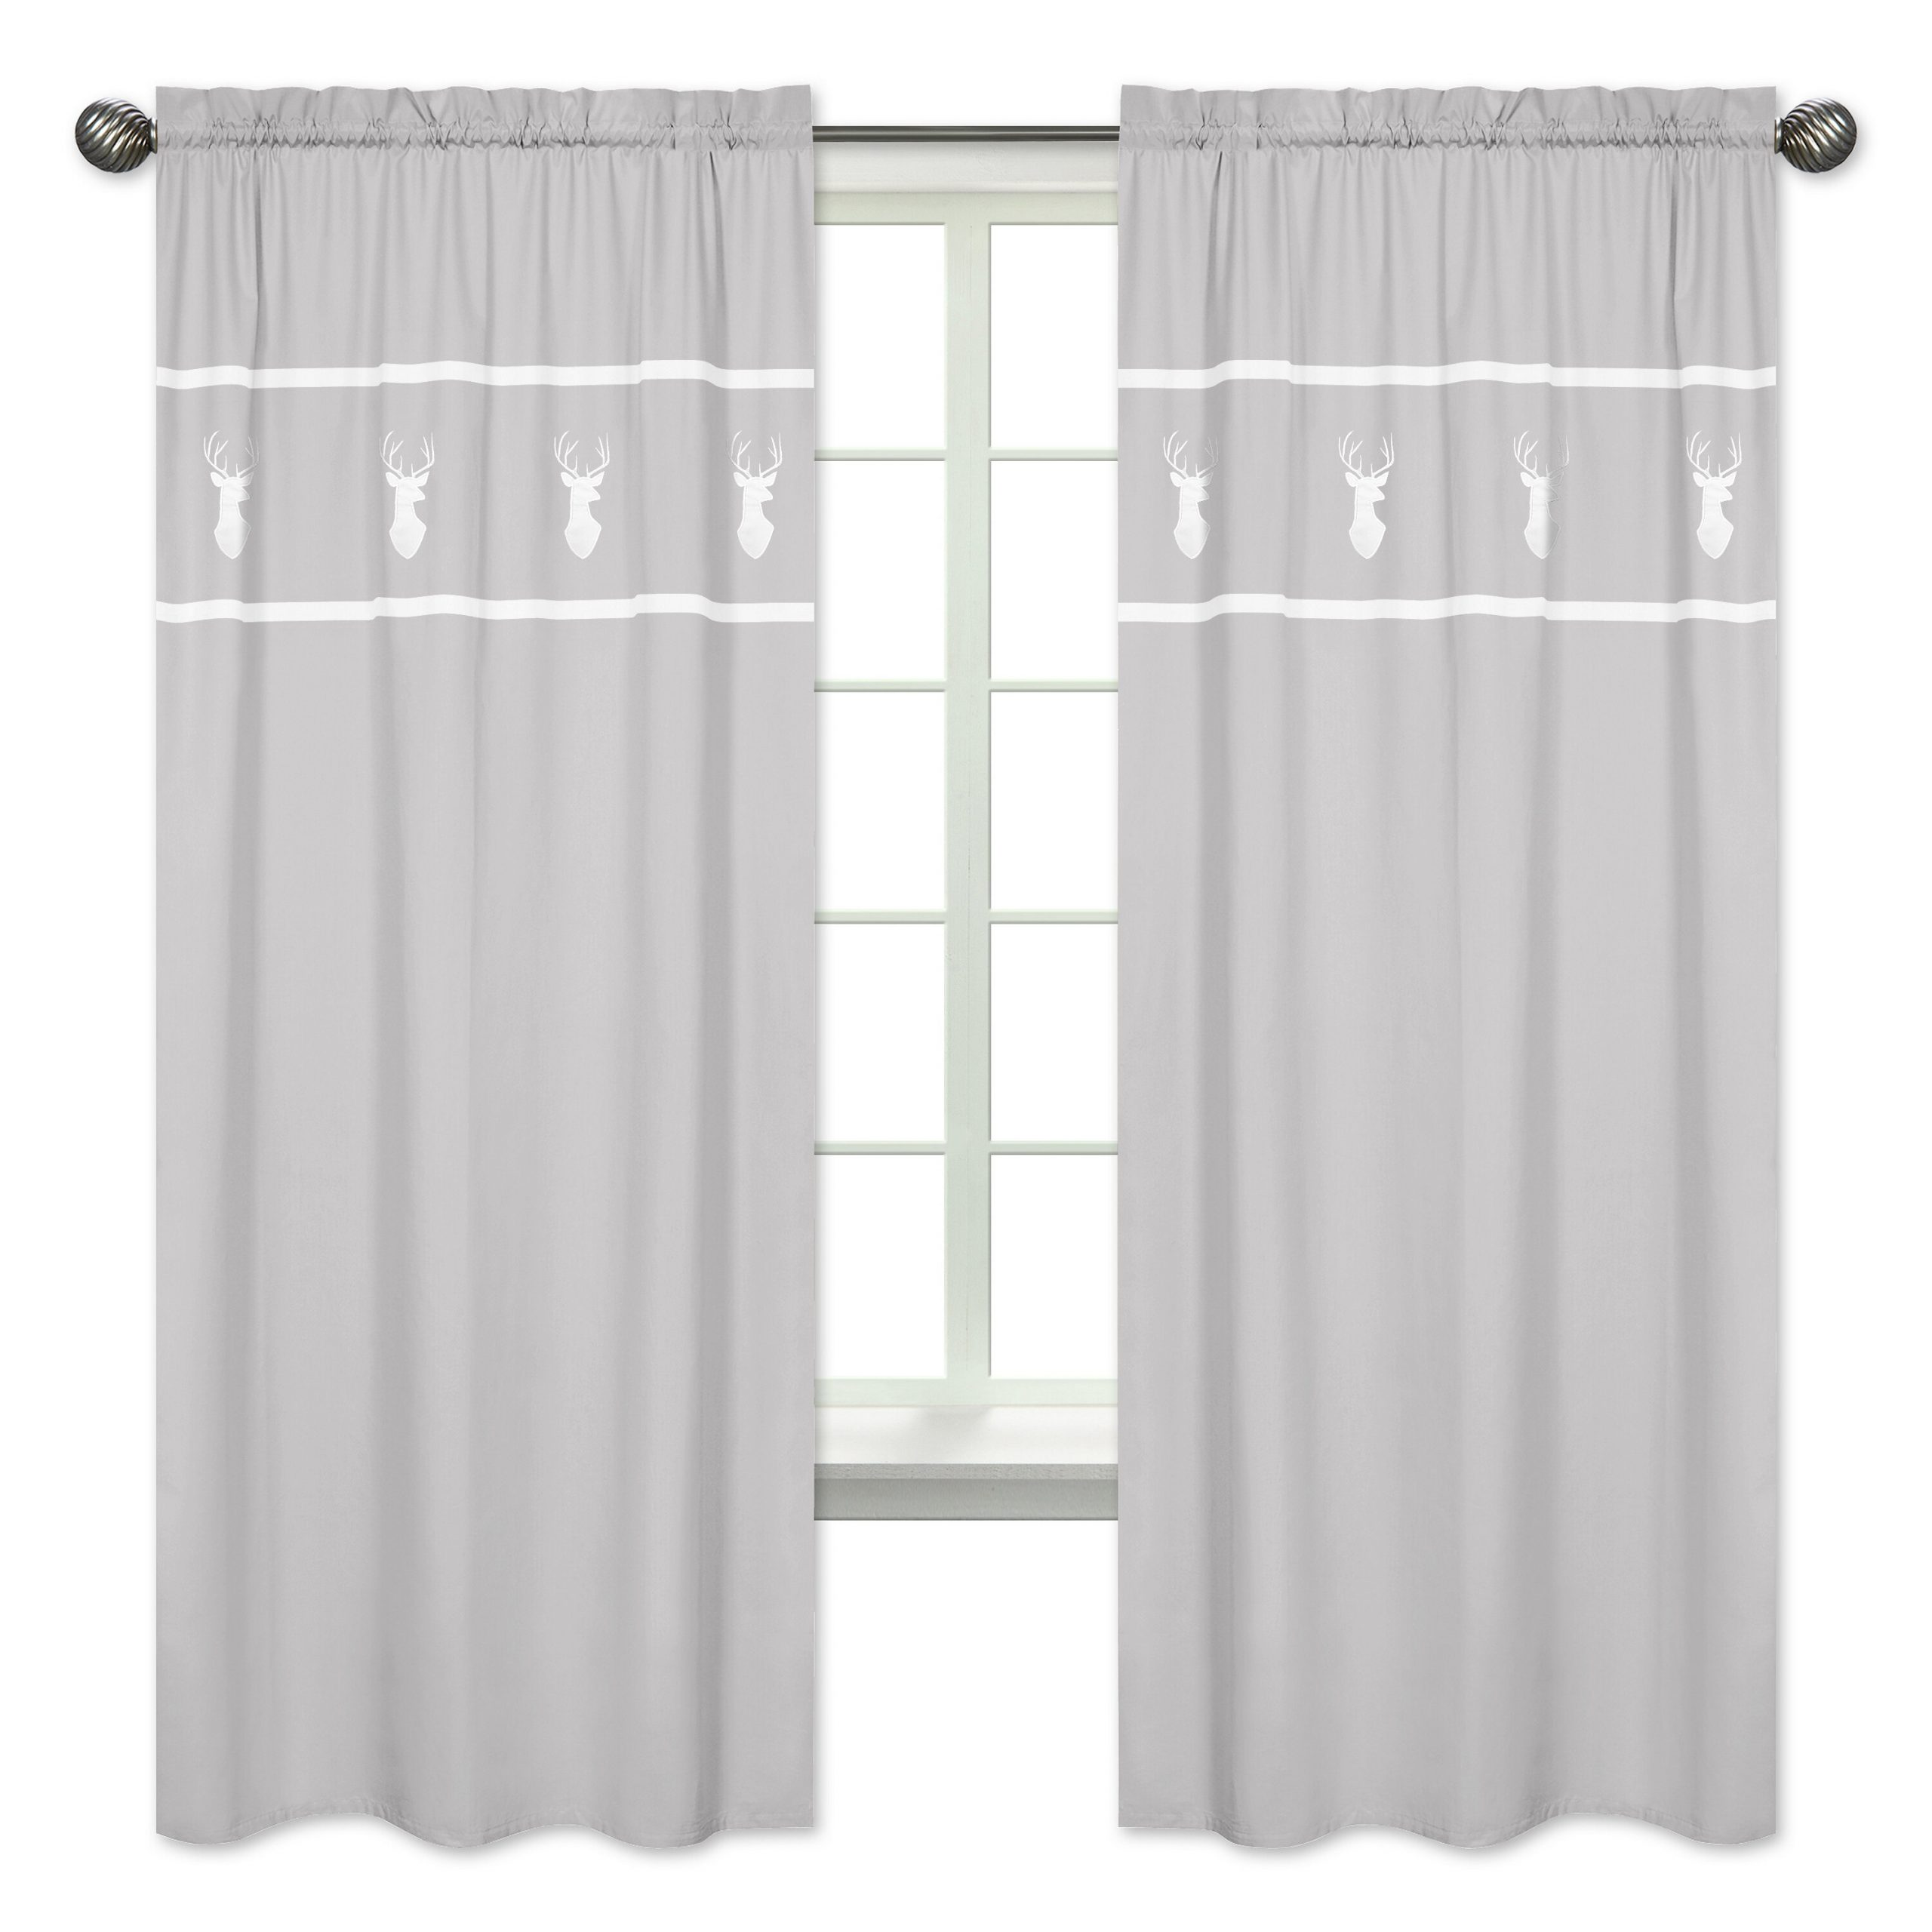 Woodsy Rod Pocket Panels Pair Curtains For Marine Life Motif Knitted Lace Window Curtain Pieces (View 13 of 20)